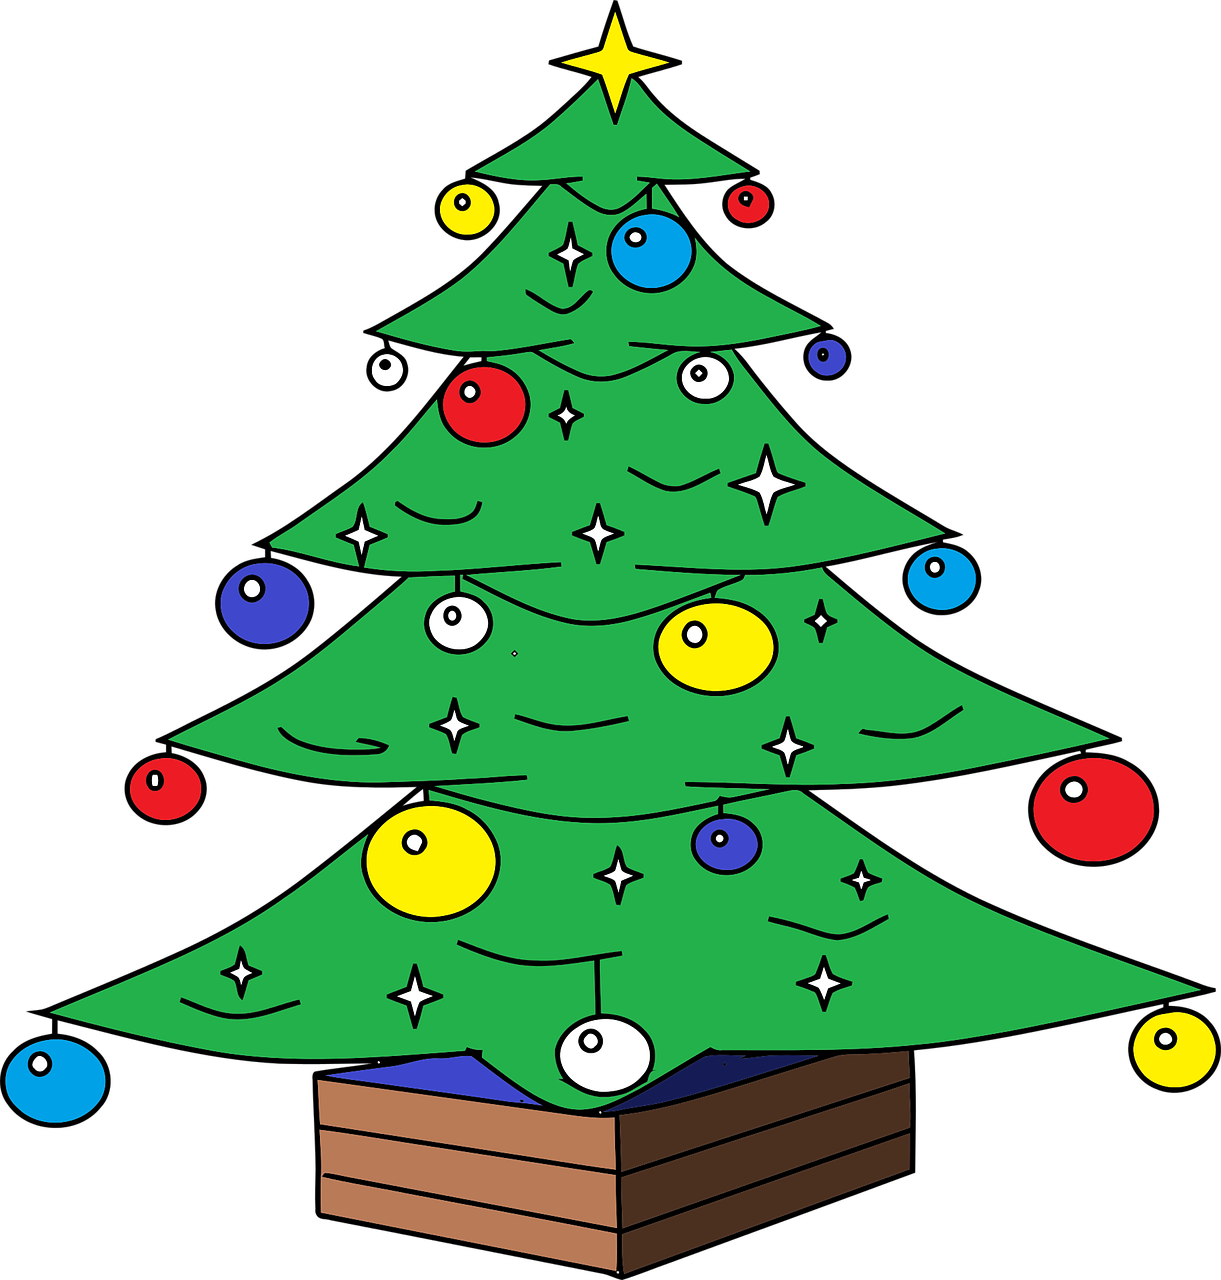 how to draw a Christmas tree 4